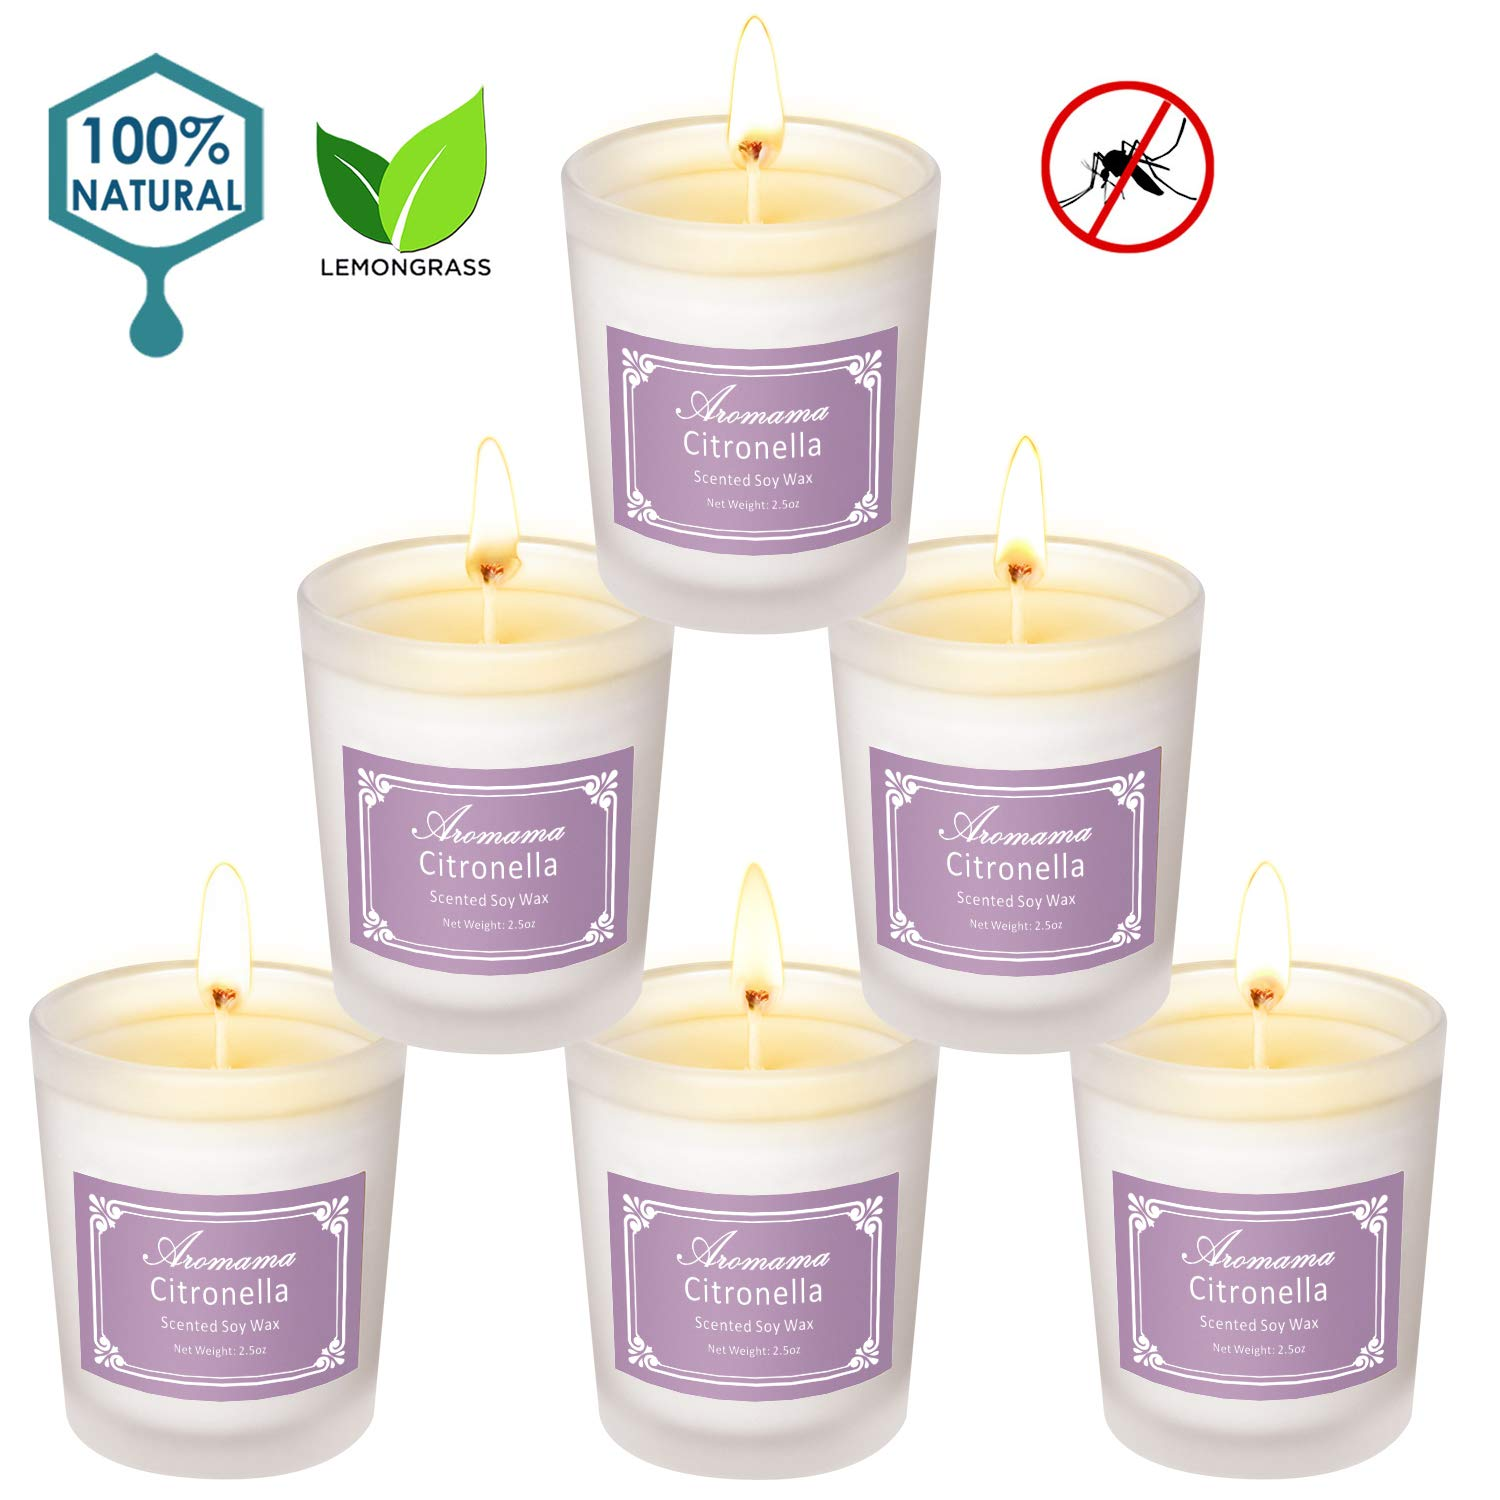 Aromama Pack of 6 Citronella Candles Indoor and Outdoor Scented Natural Soy Wax Glass Candle Gift Set by Aromama